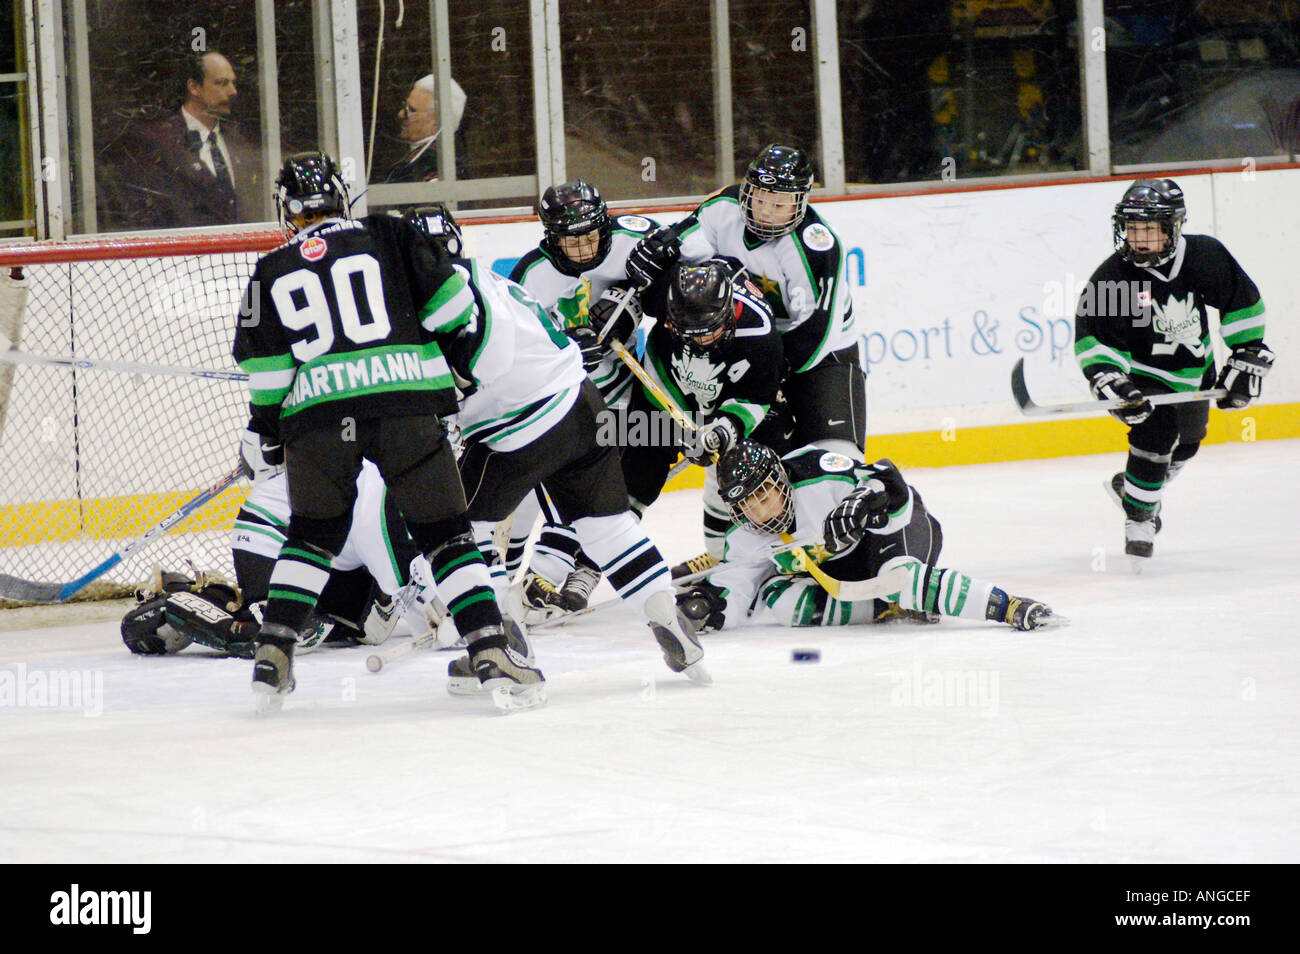 Ice Hockey Tournament action Silver Stick International Hockey playoffs at Port Huron Michigan - Stock Image